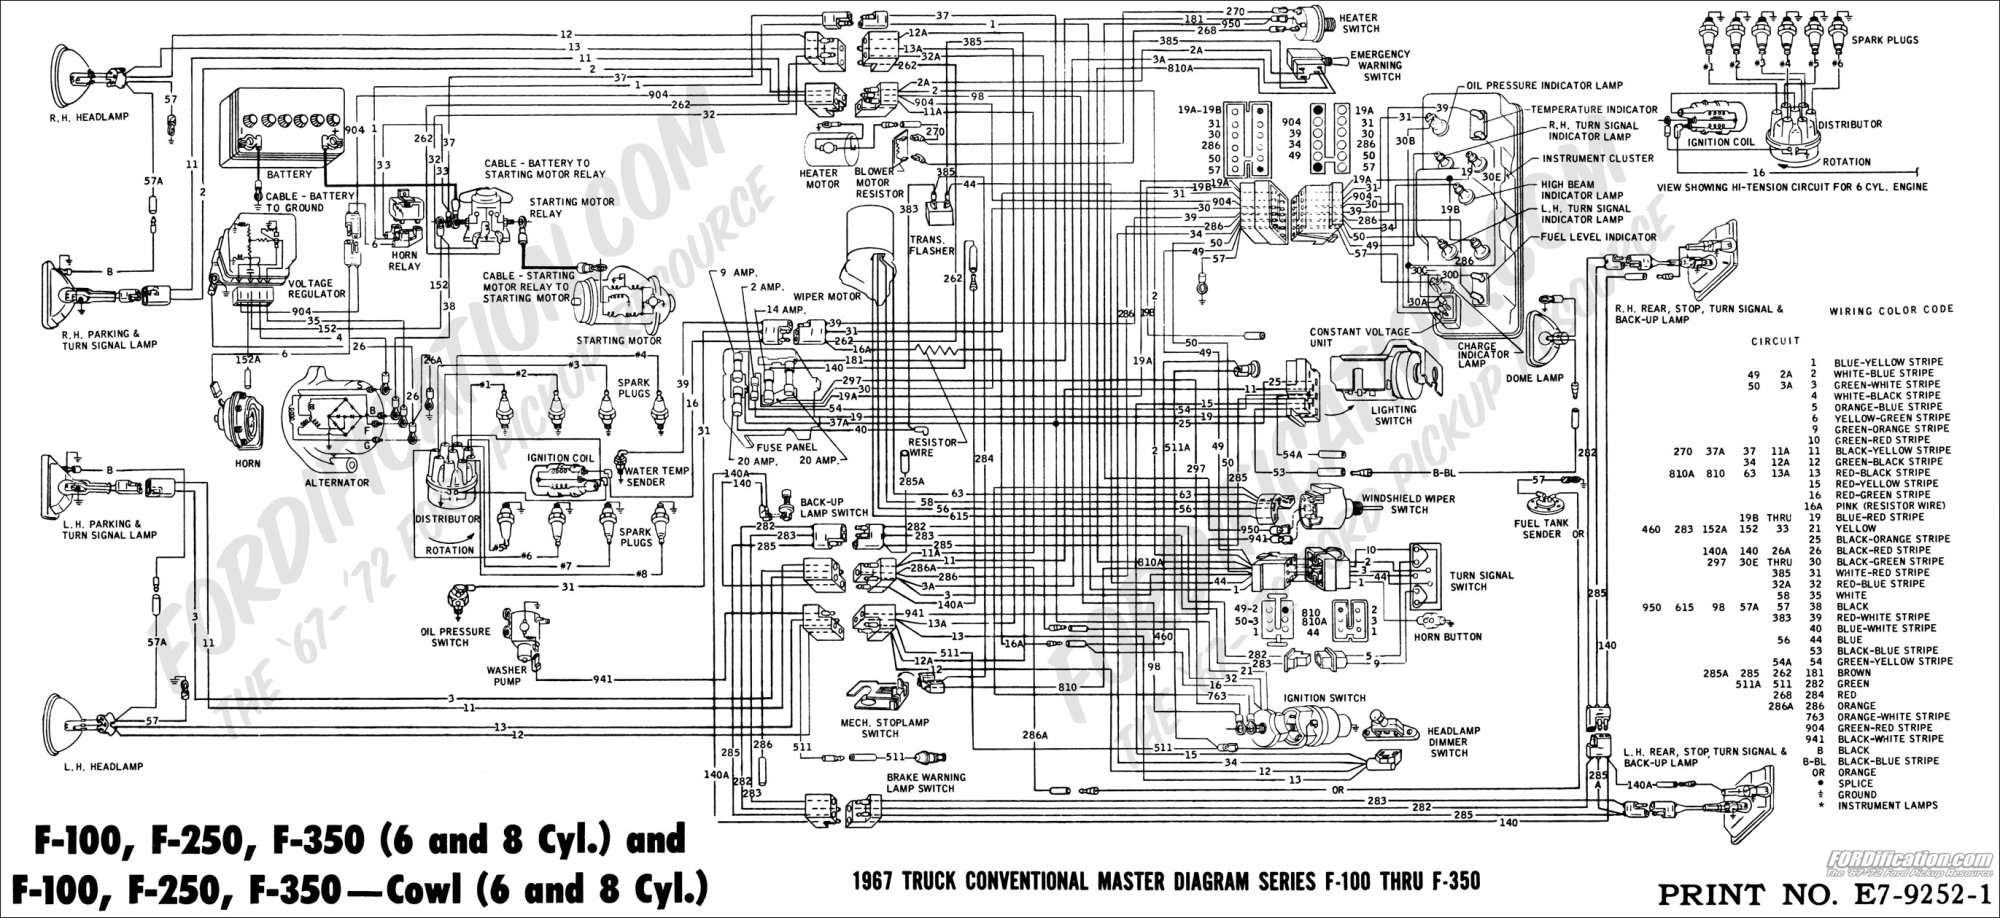 hight resolution of 1998 ford f 150 wiring harness diagram wiring diagram perfomance 1998 ford f150 fuel pump wiring diagram 1998 ford f150 wiring diagram